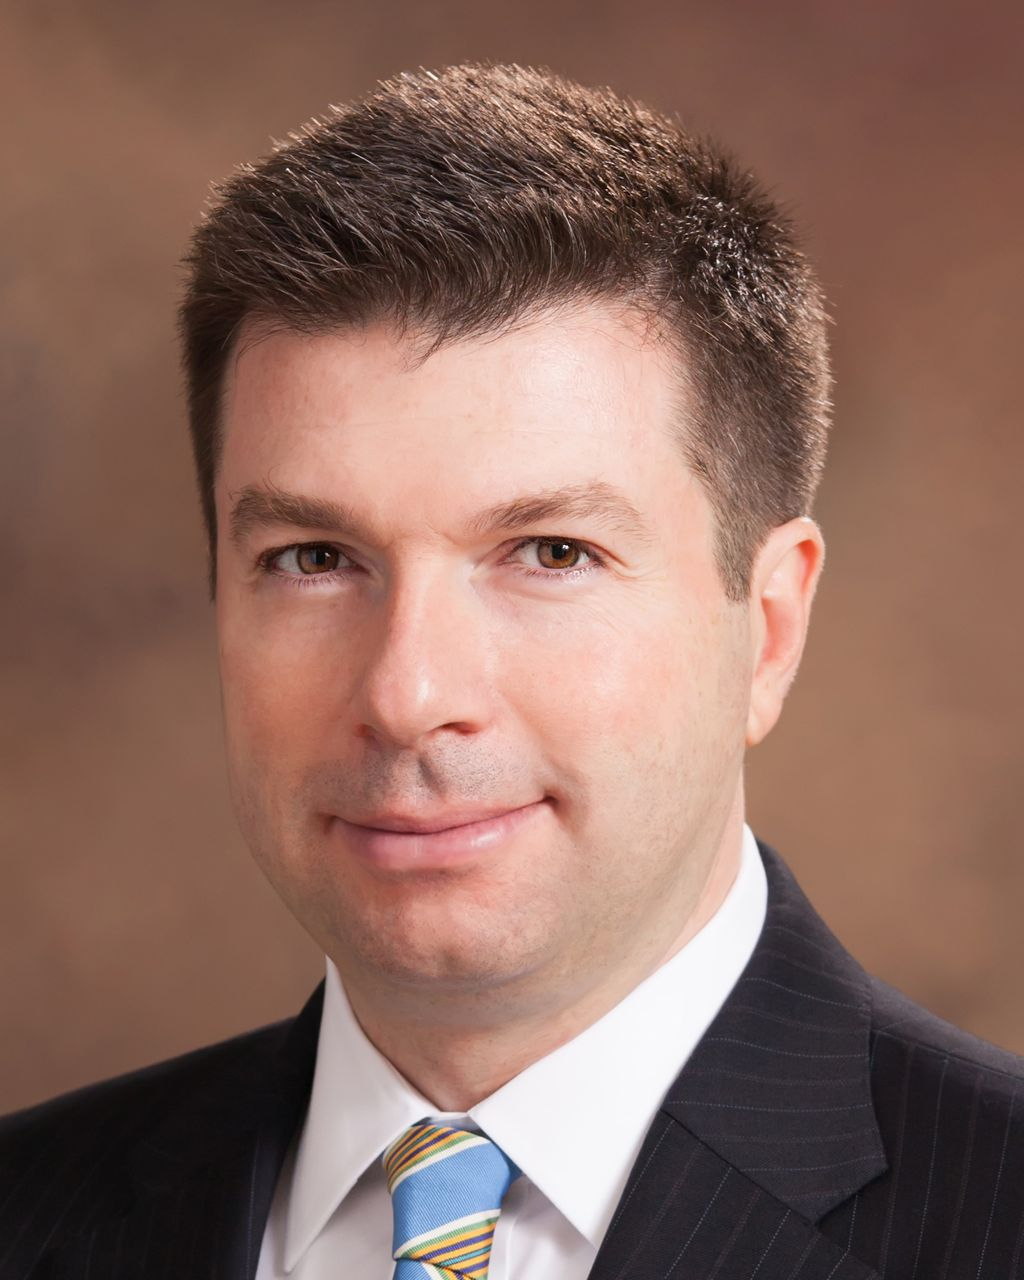 Patrick Cote, financial advisor Needham MA